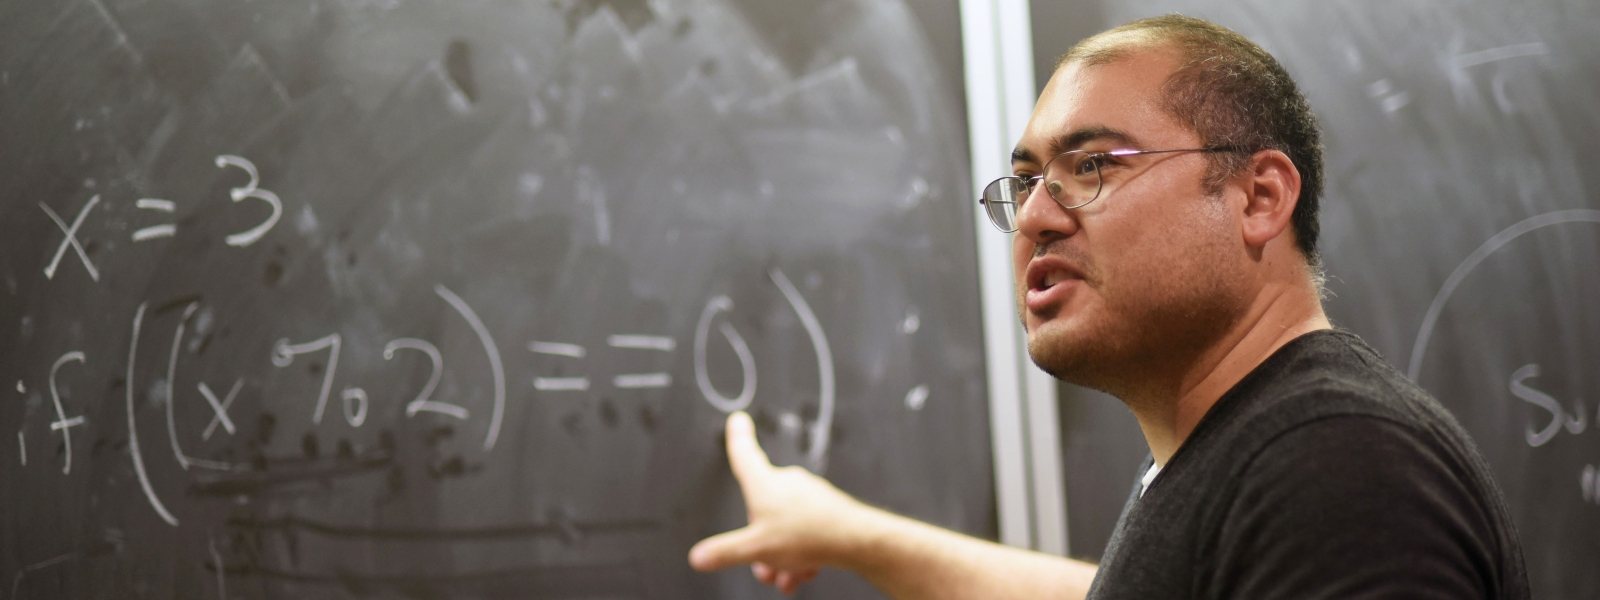 Math professor pointing to equations on the chalkboard